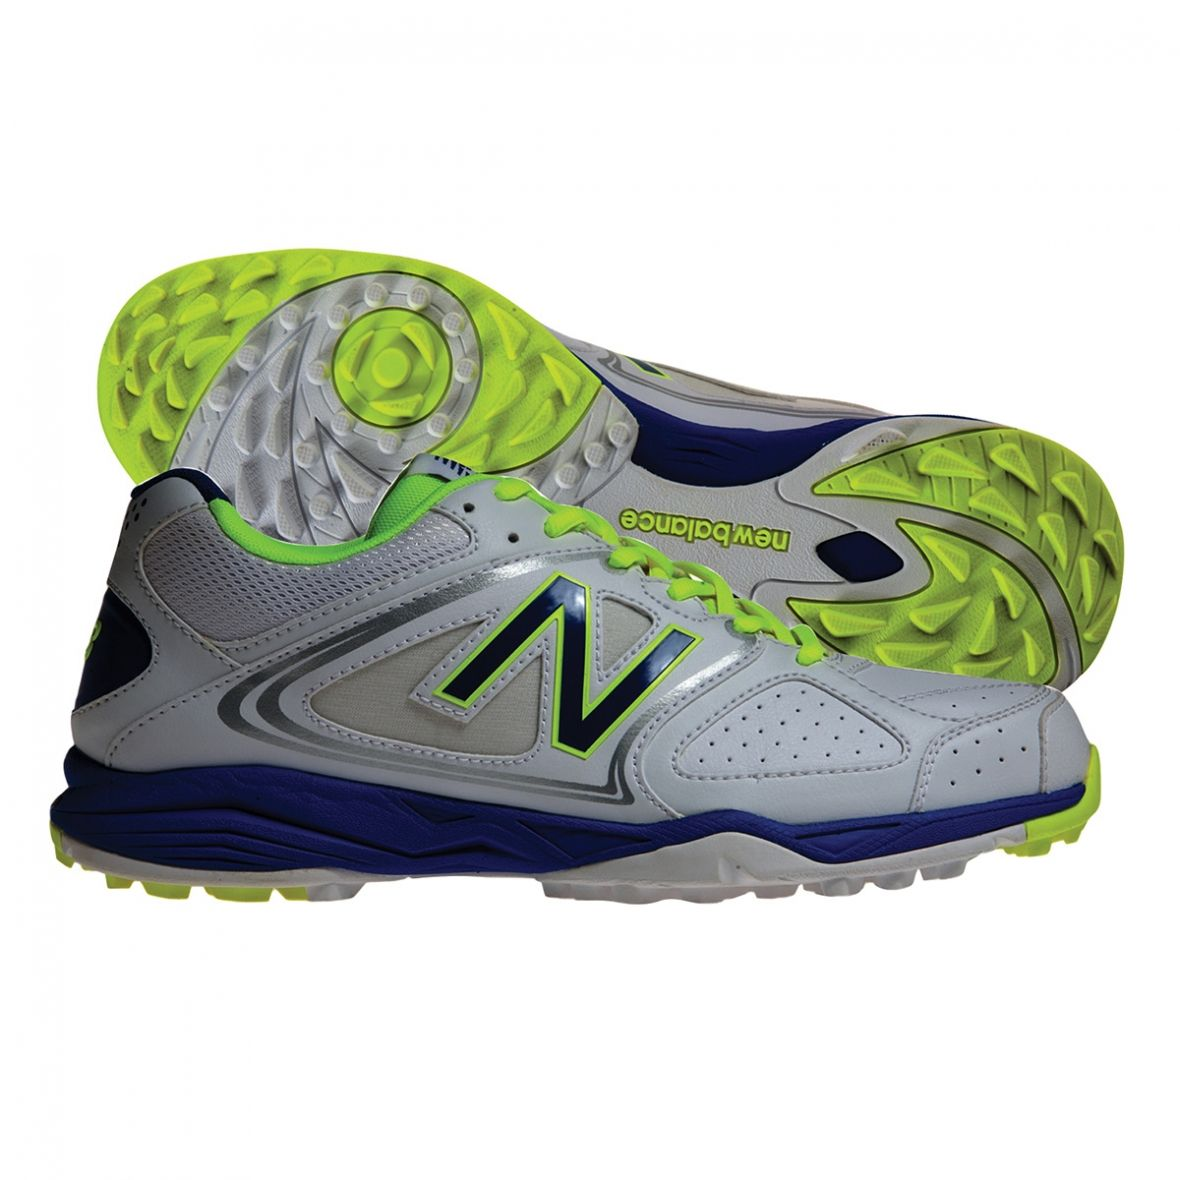 price of new balance dc 580 nz